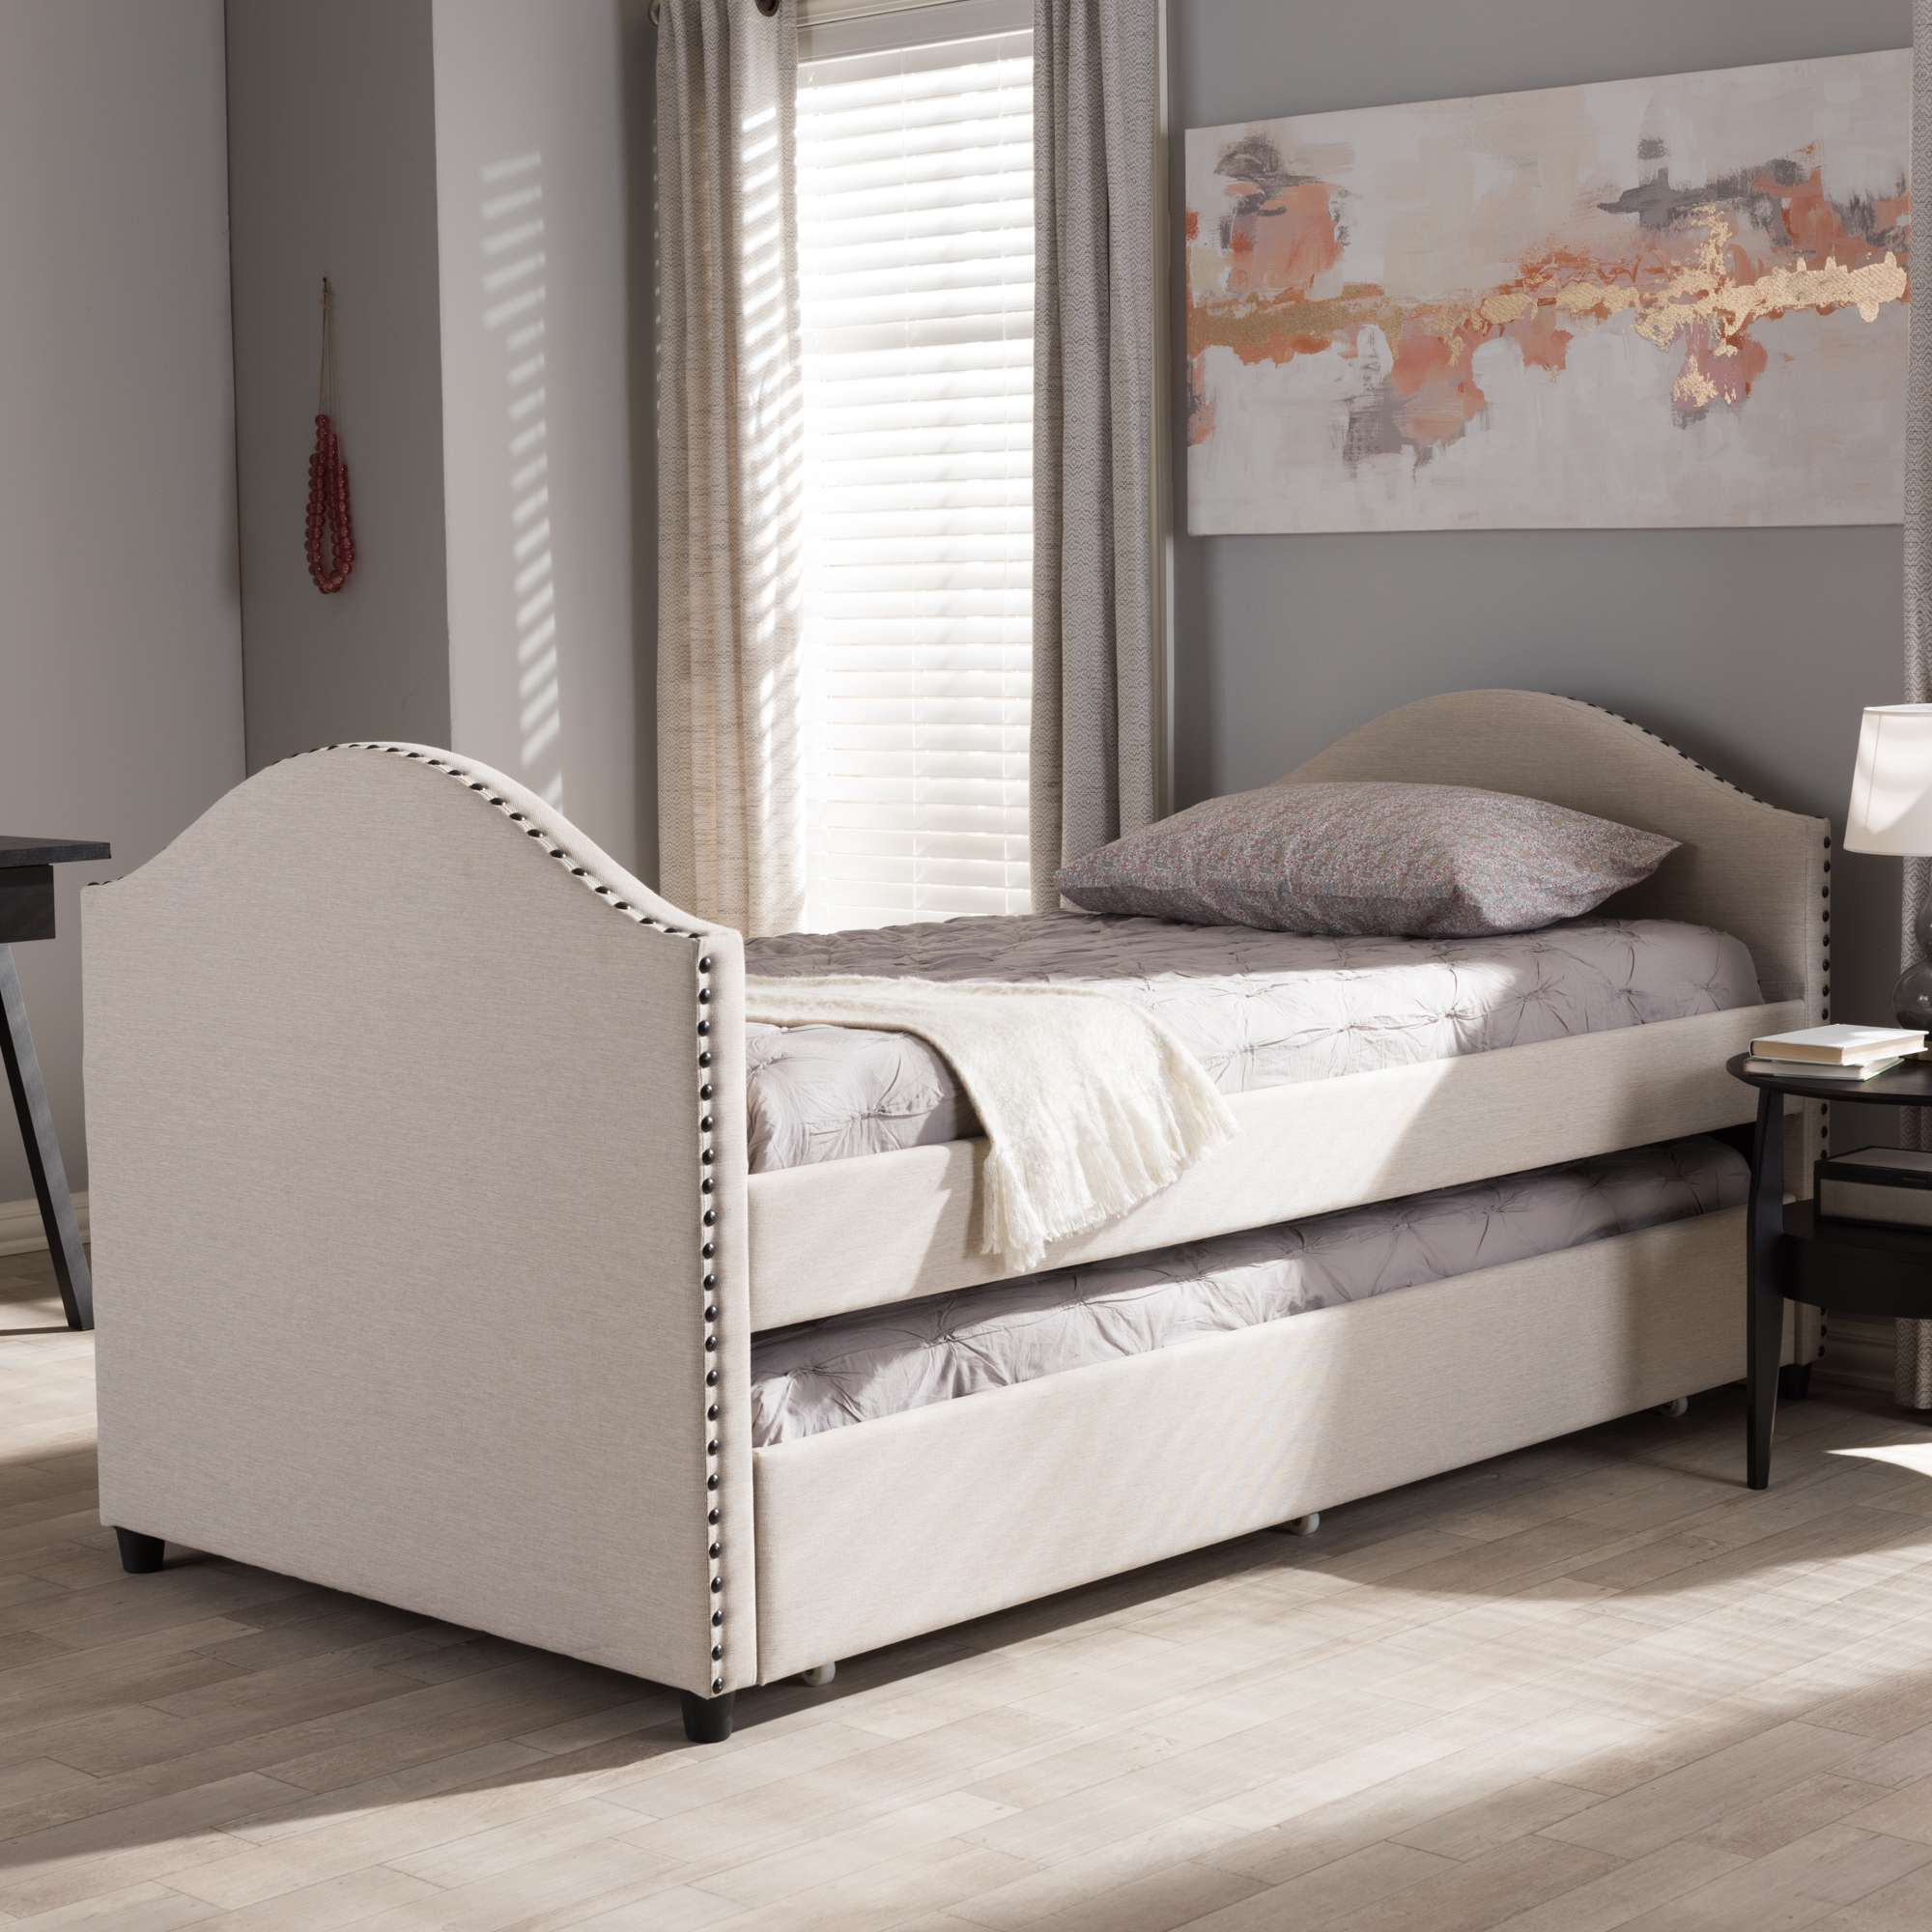 Alessia Contemporary Beige Upholstered Daybed With Trundle